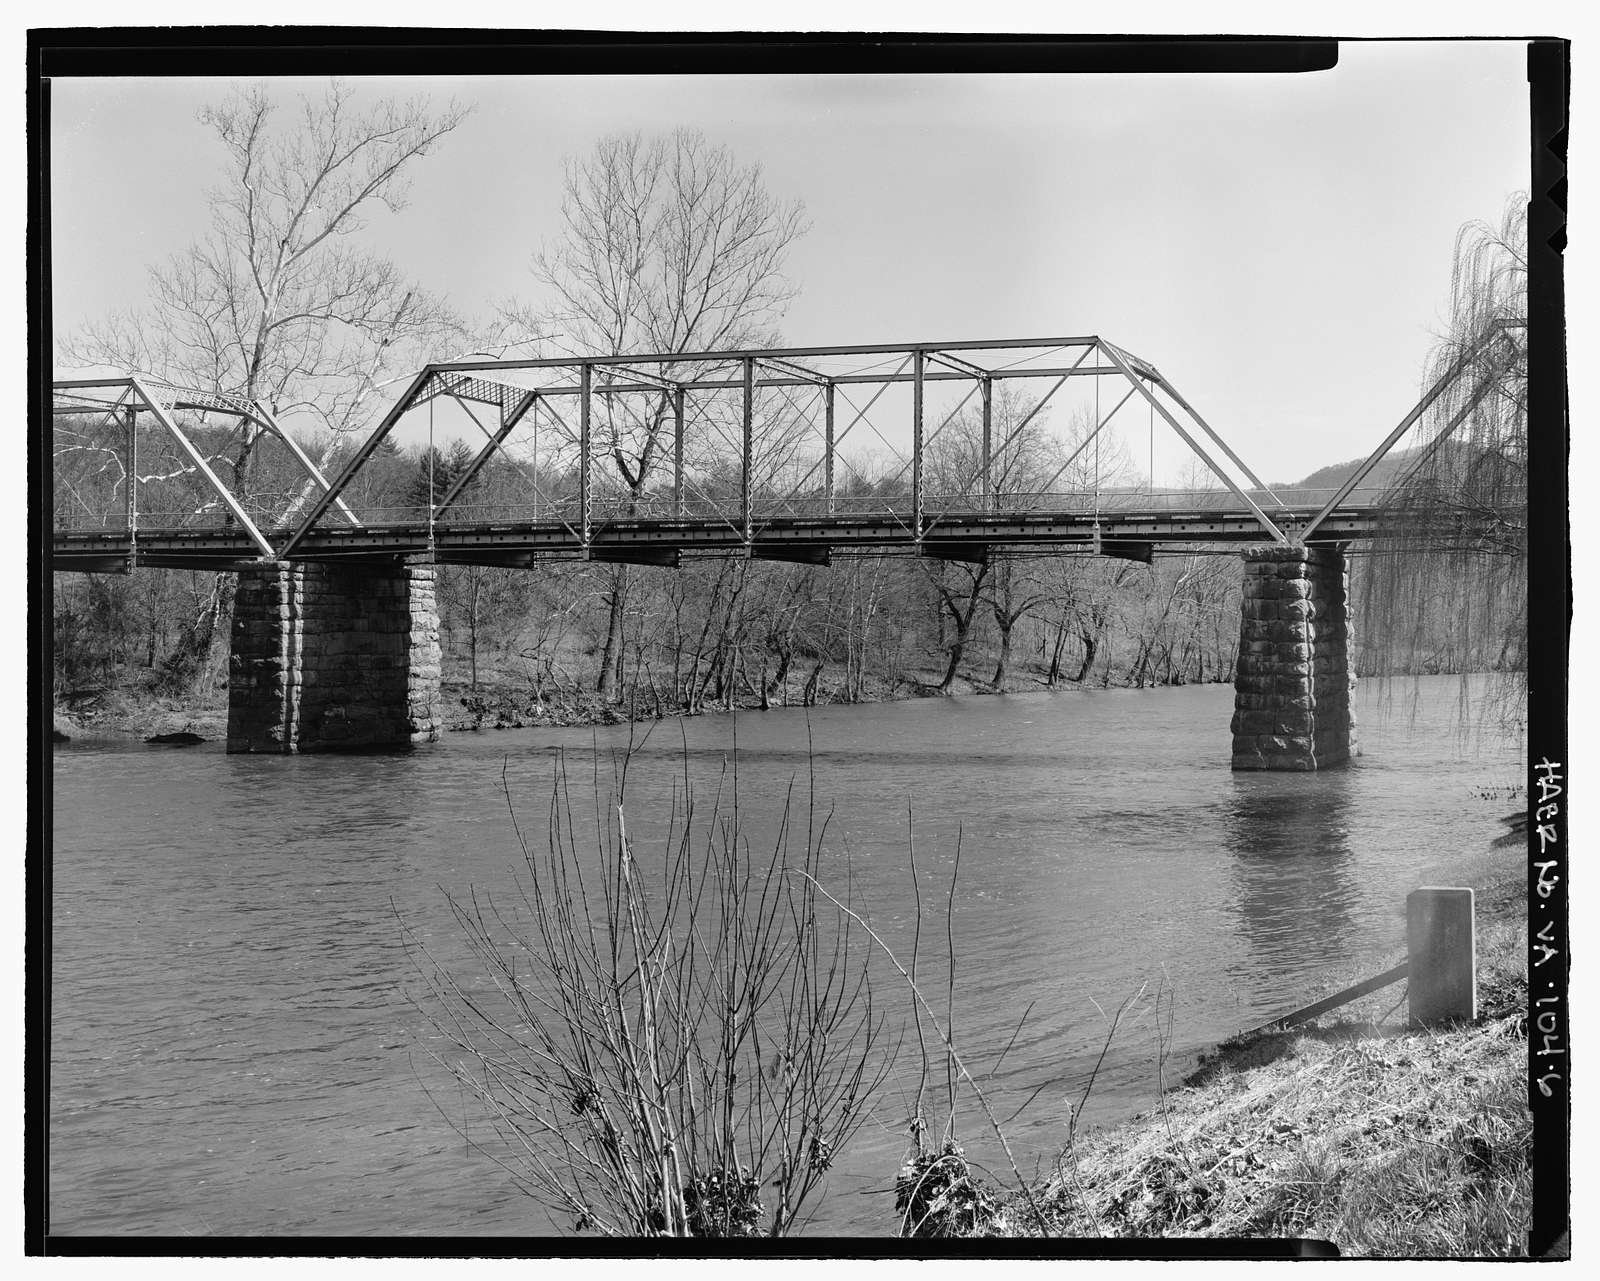 McPherson's Ford Bridge, State Route 633 over Cowpasture River, Clifton Forge, Alleghany County, VA